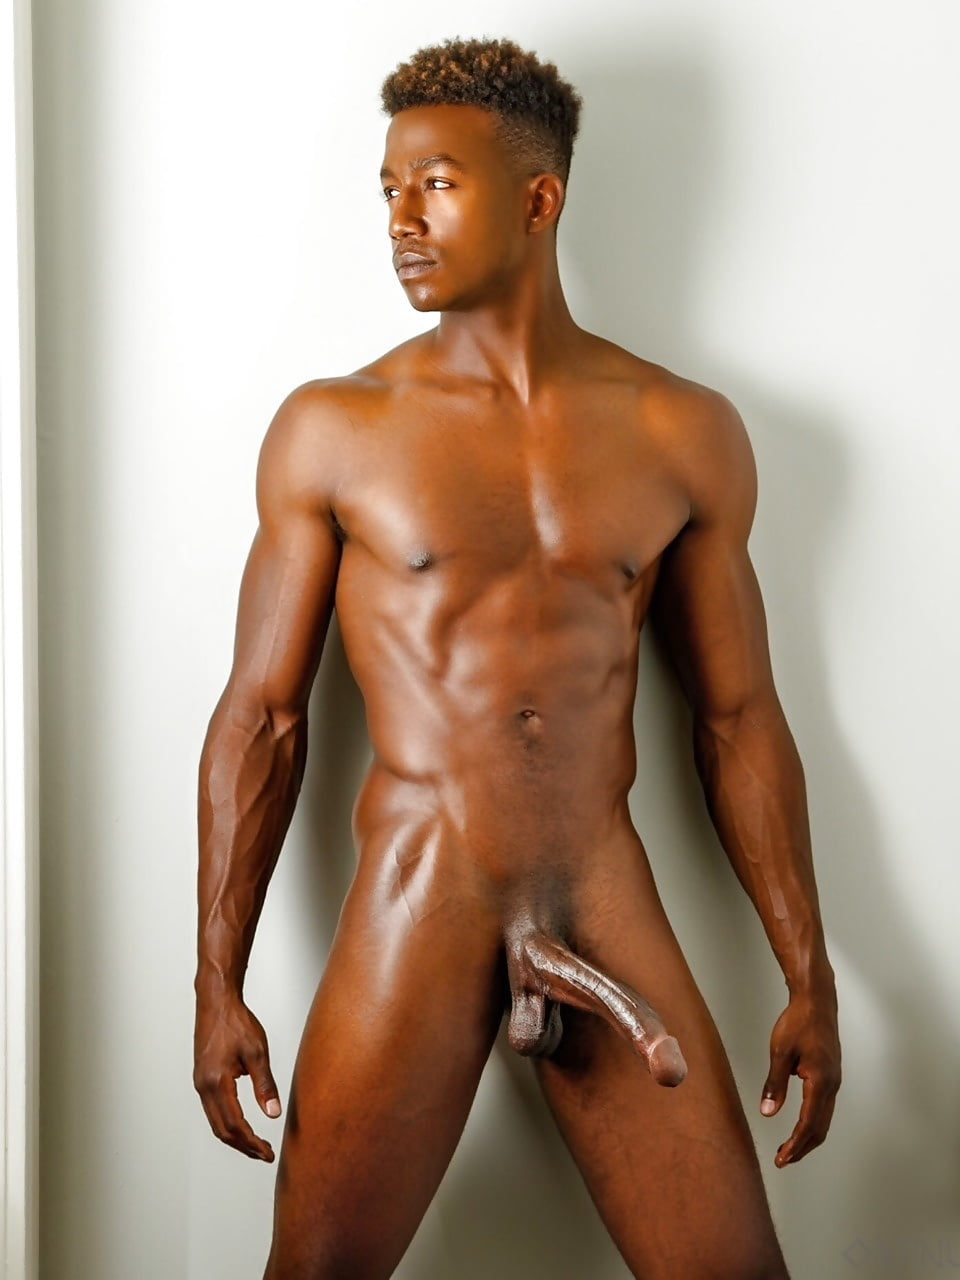 Nude black men video, free hardcore mature gallery